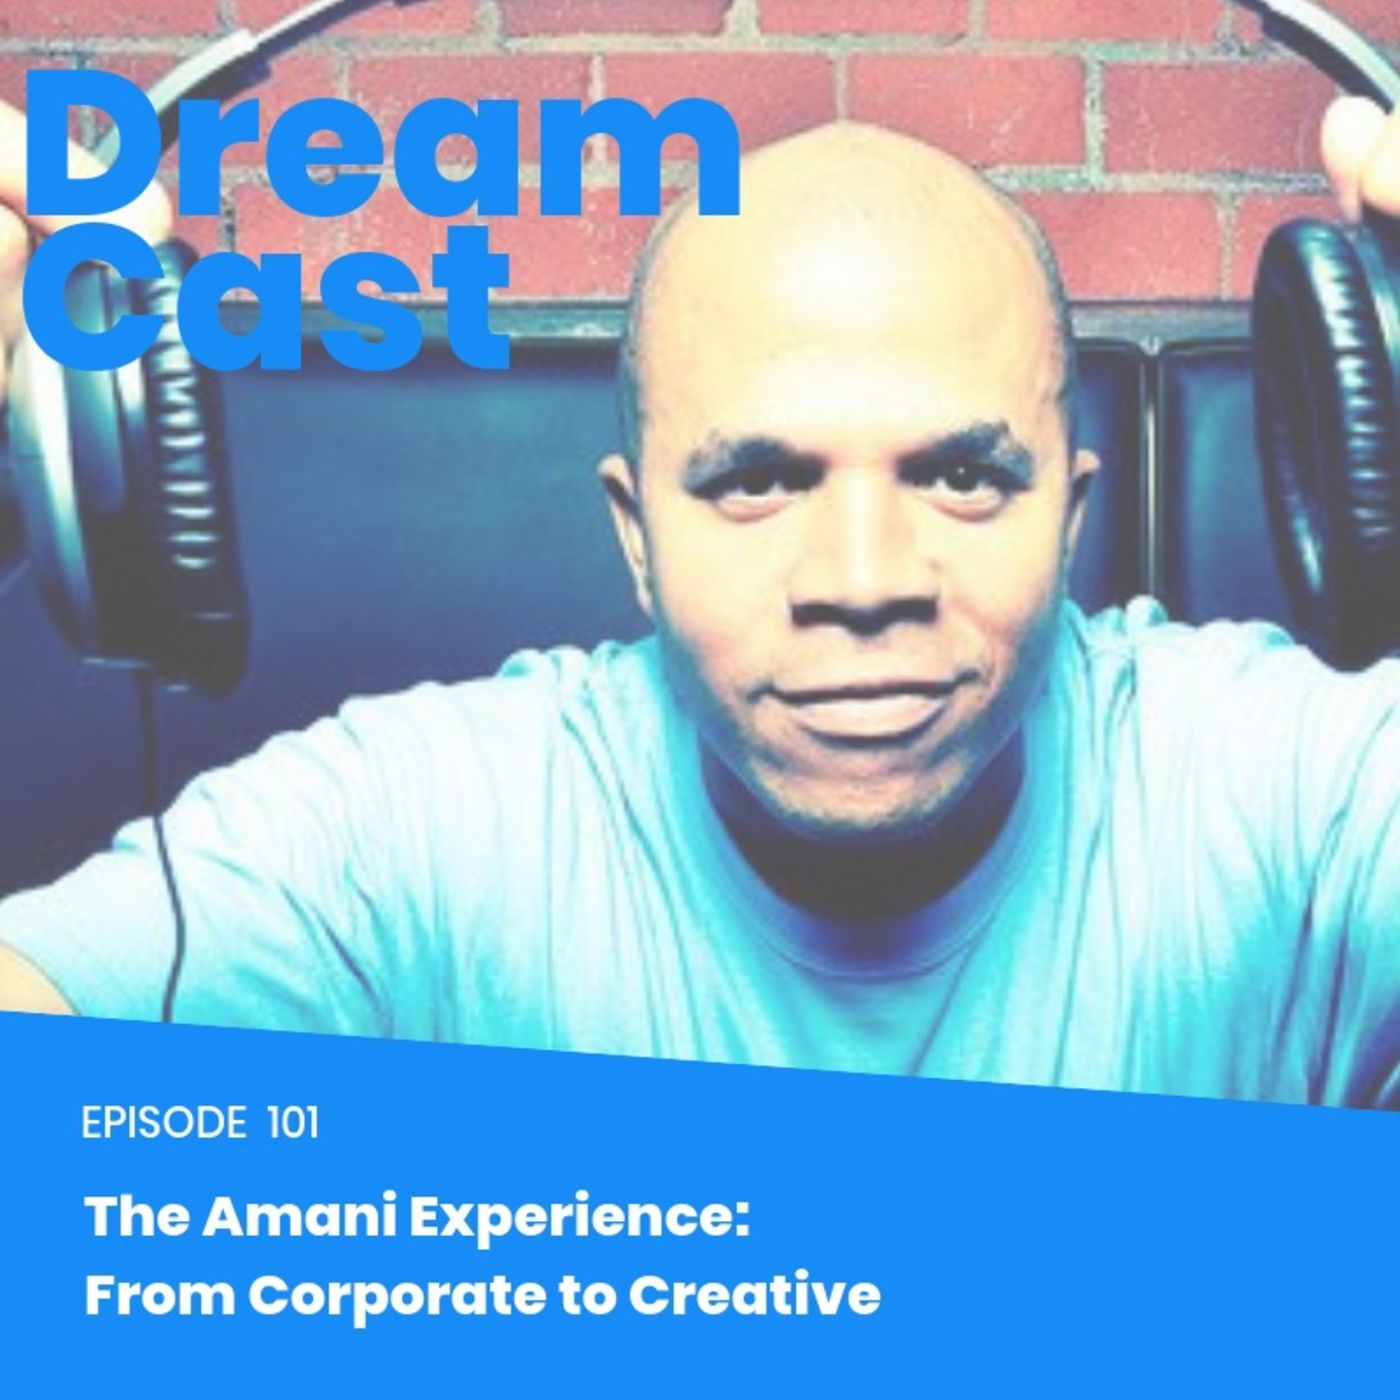 Episode 101: The Amani Experience: From Corporate to Creative